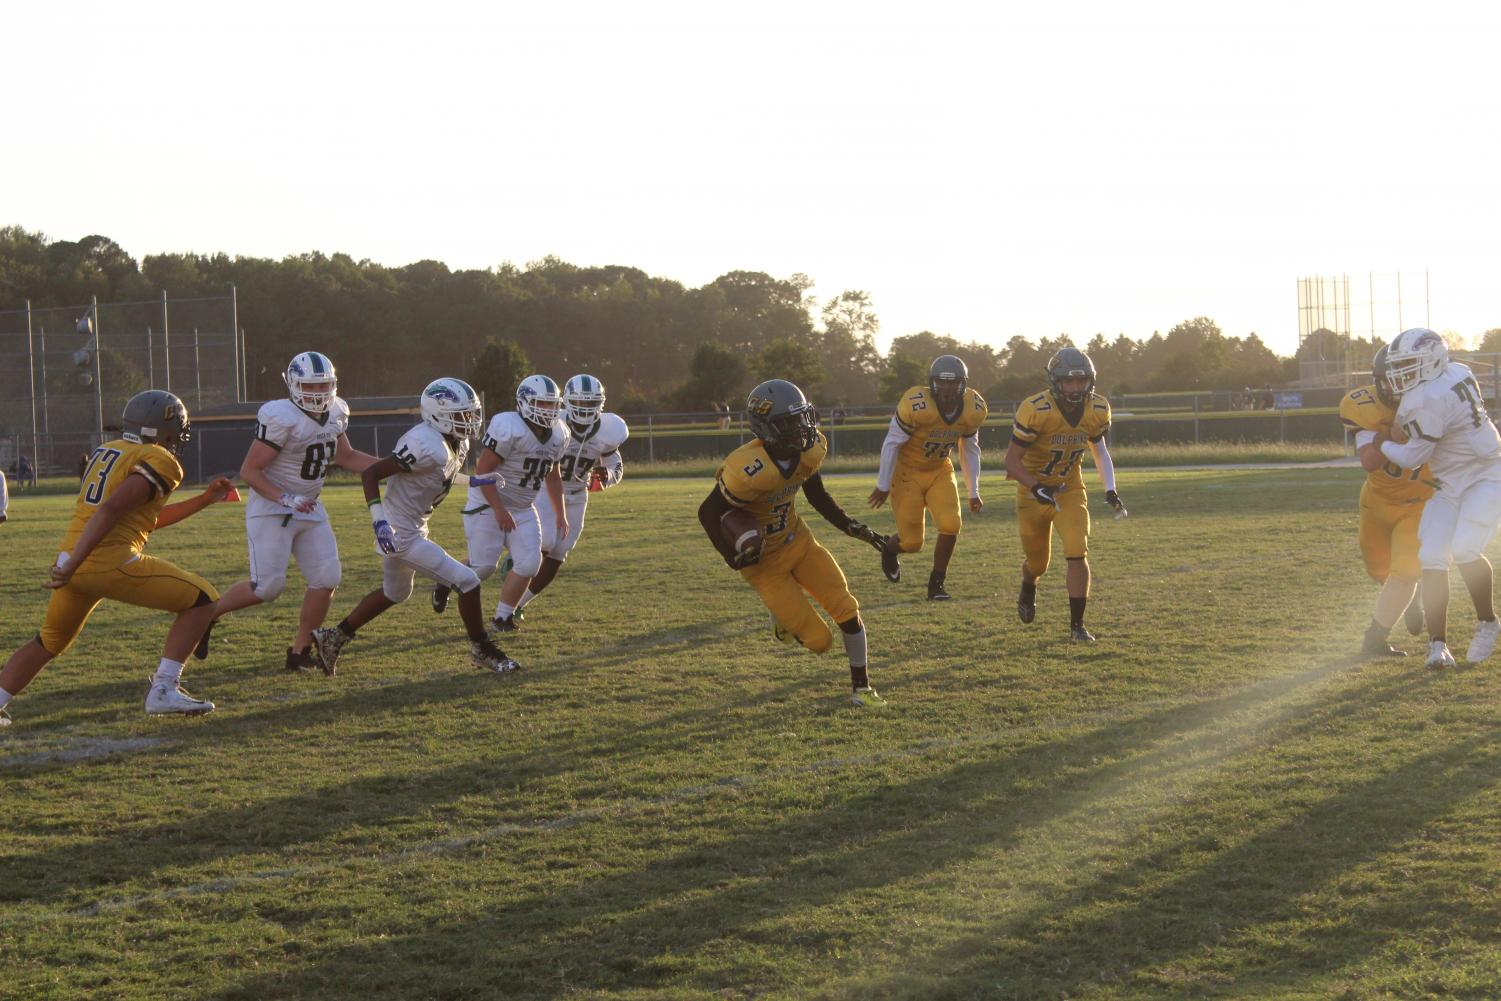 Sophomore wide receiver Caleb Johnson evades defenders in a JV football game at Ocean Lakes on Sept. 19.